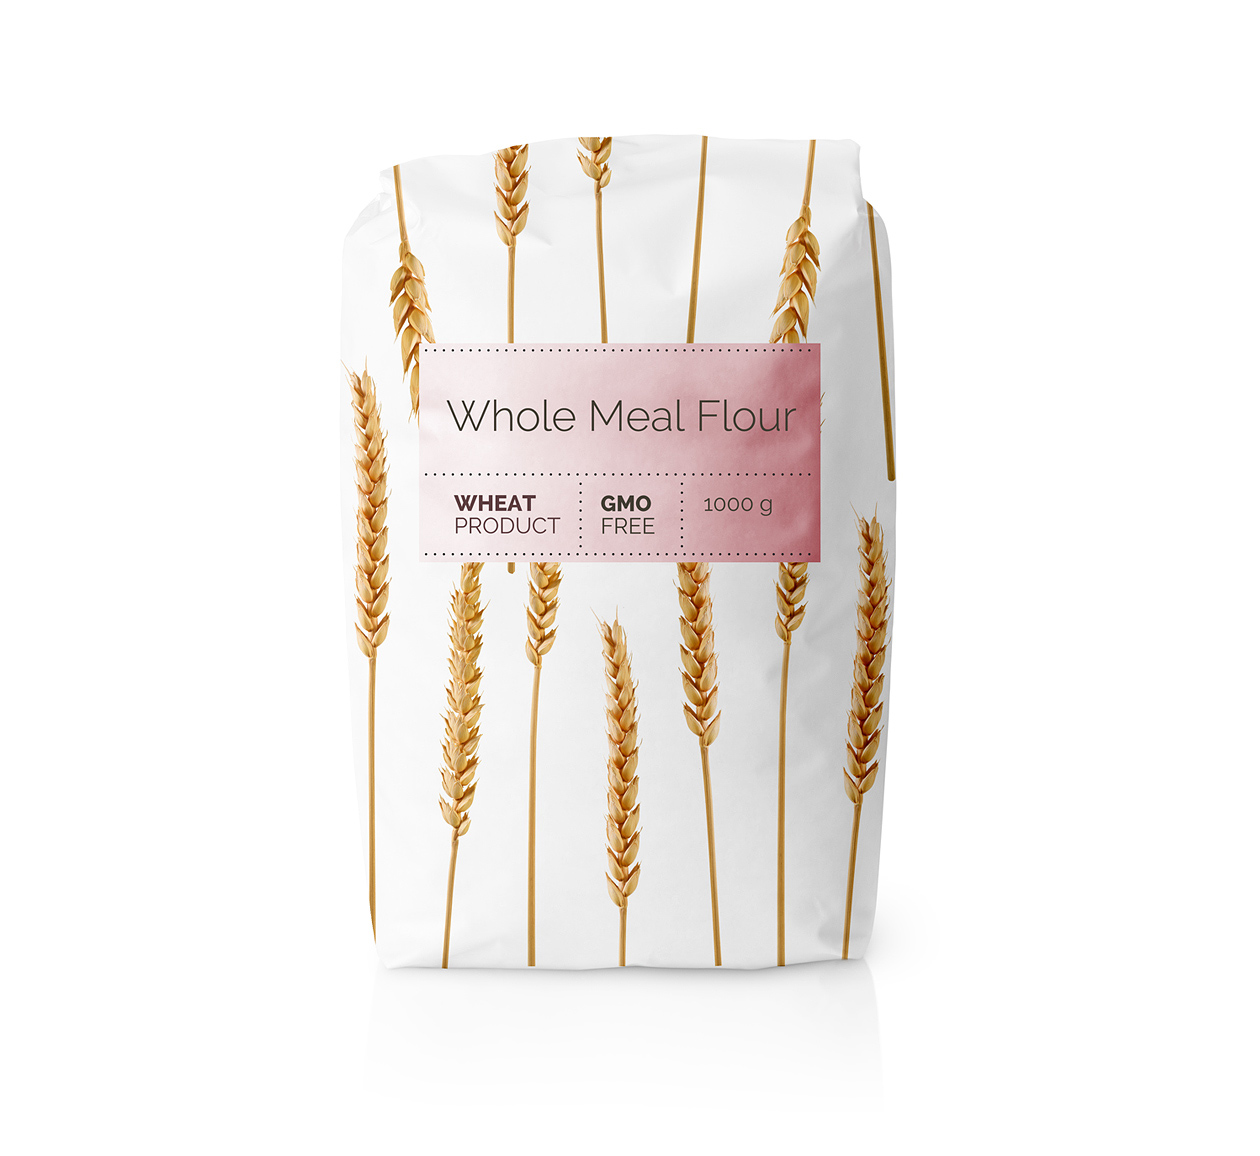 Our Work View Our Digital Print Web Projects: Minimalist Packaging For A Series Of Flours